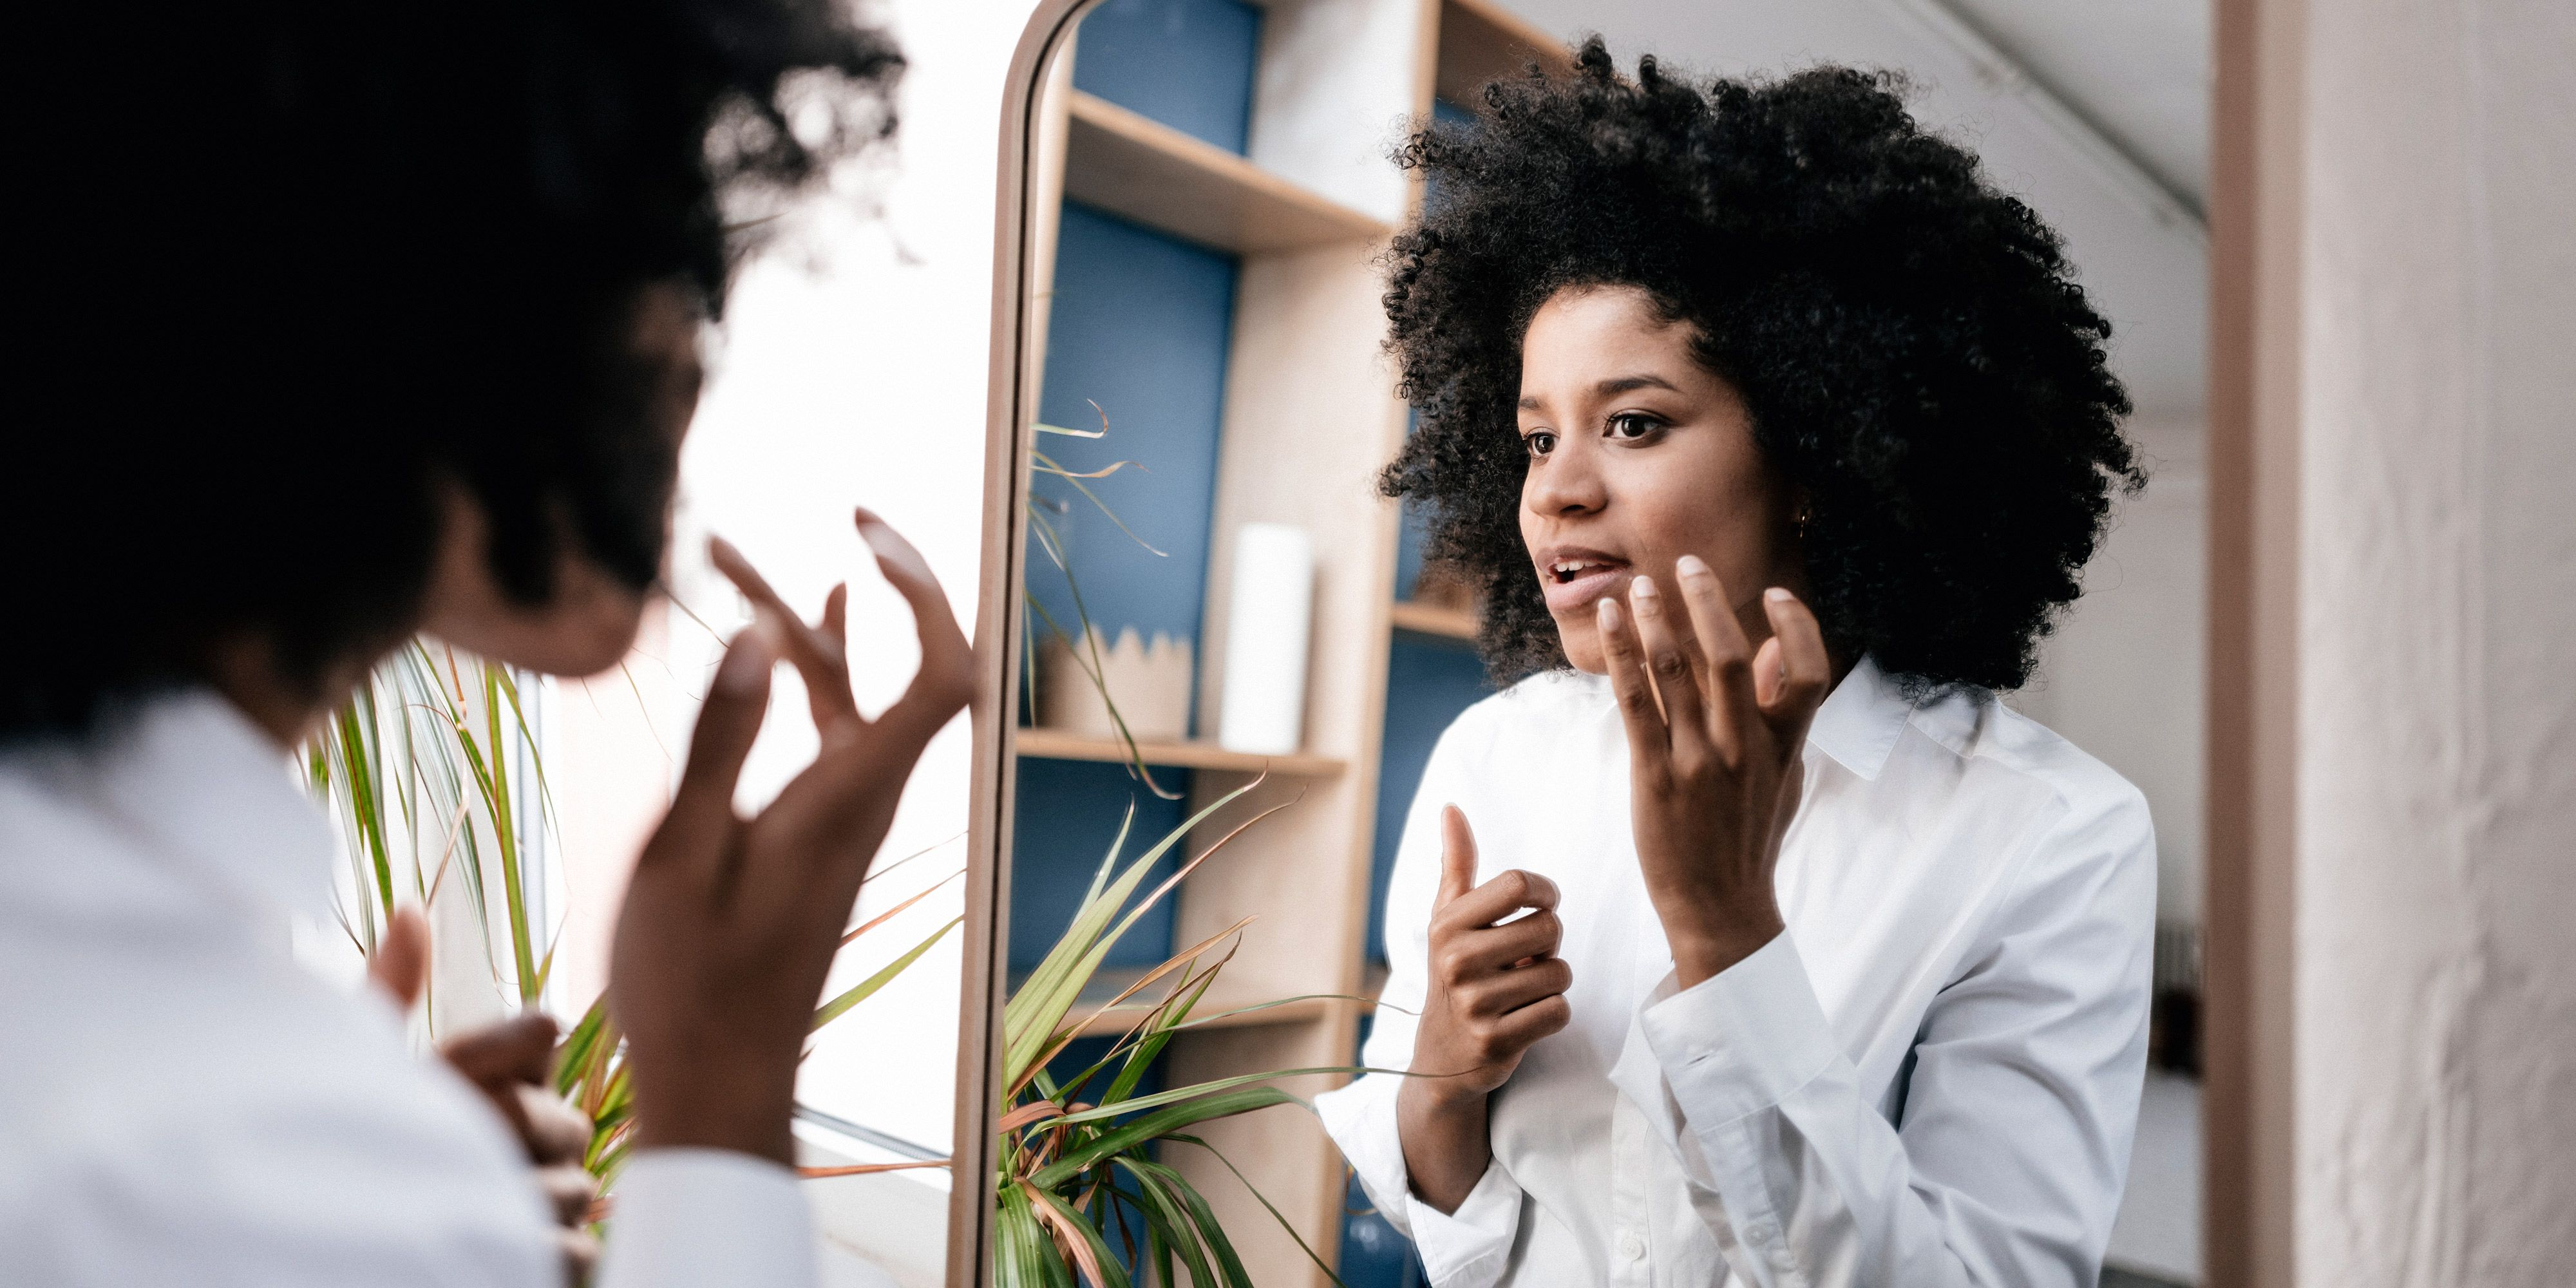 New study find that make-up can age you